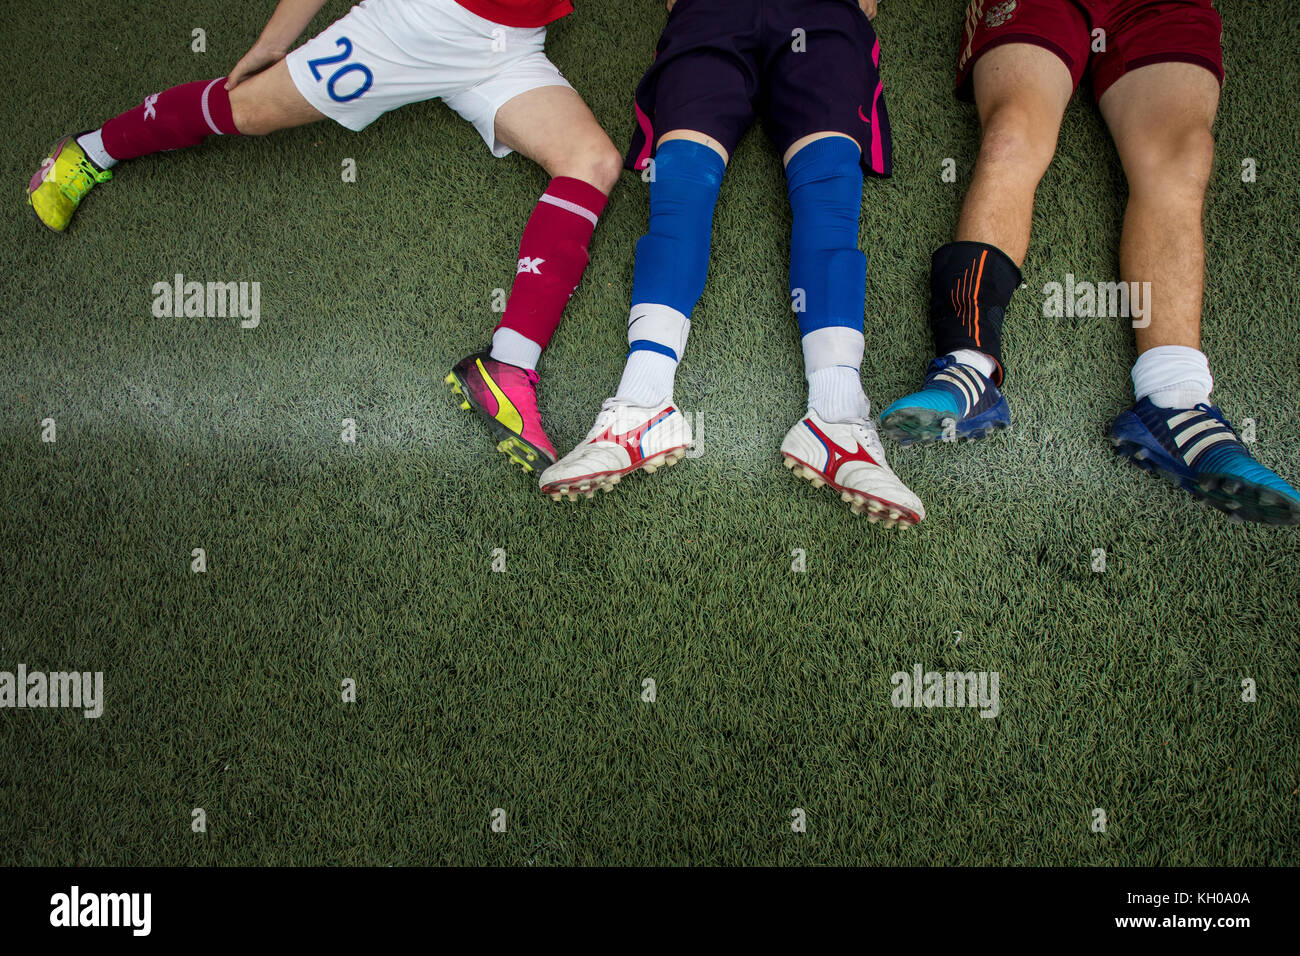 Football players of the amateur team rest after the match - Stock Image